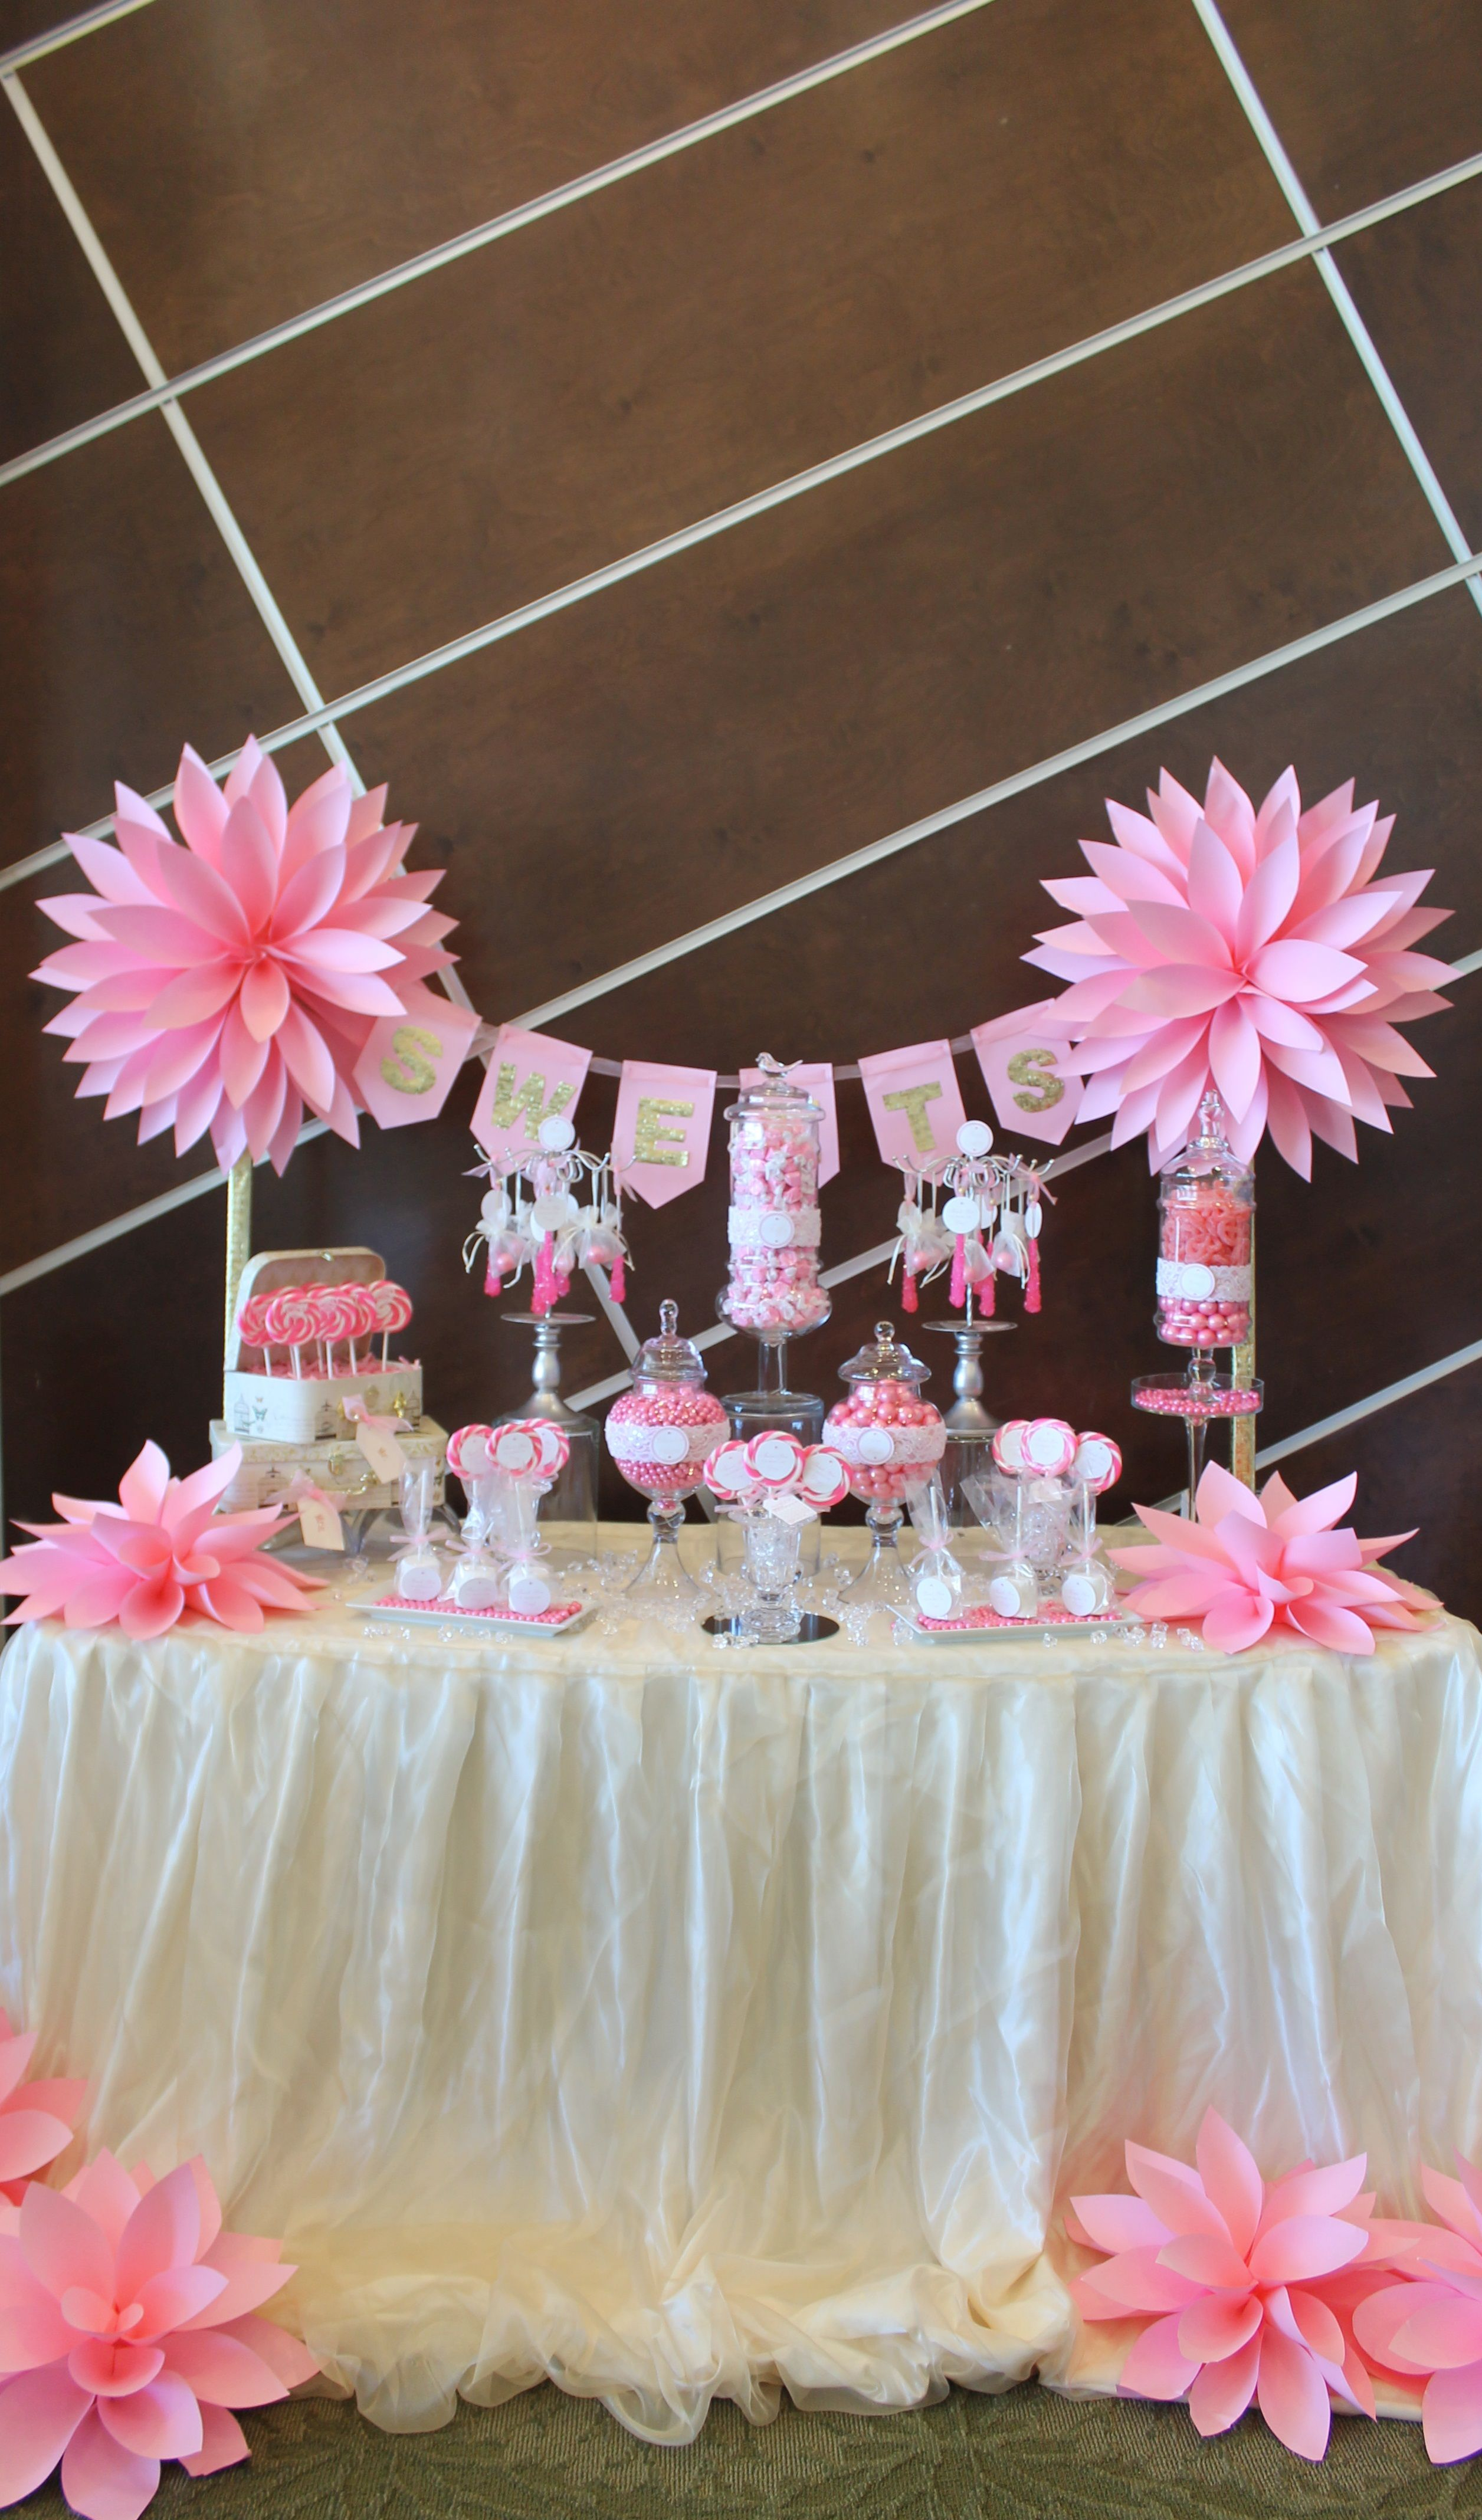 Pin By Tasty Tables On By Tasty Tables Pink Candy Buffet Candy Bar Party Candy Bar Table Decorations Pink Candy Buffet